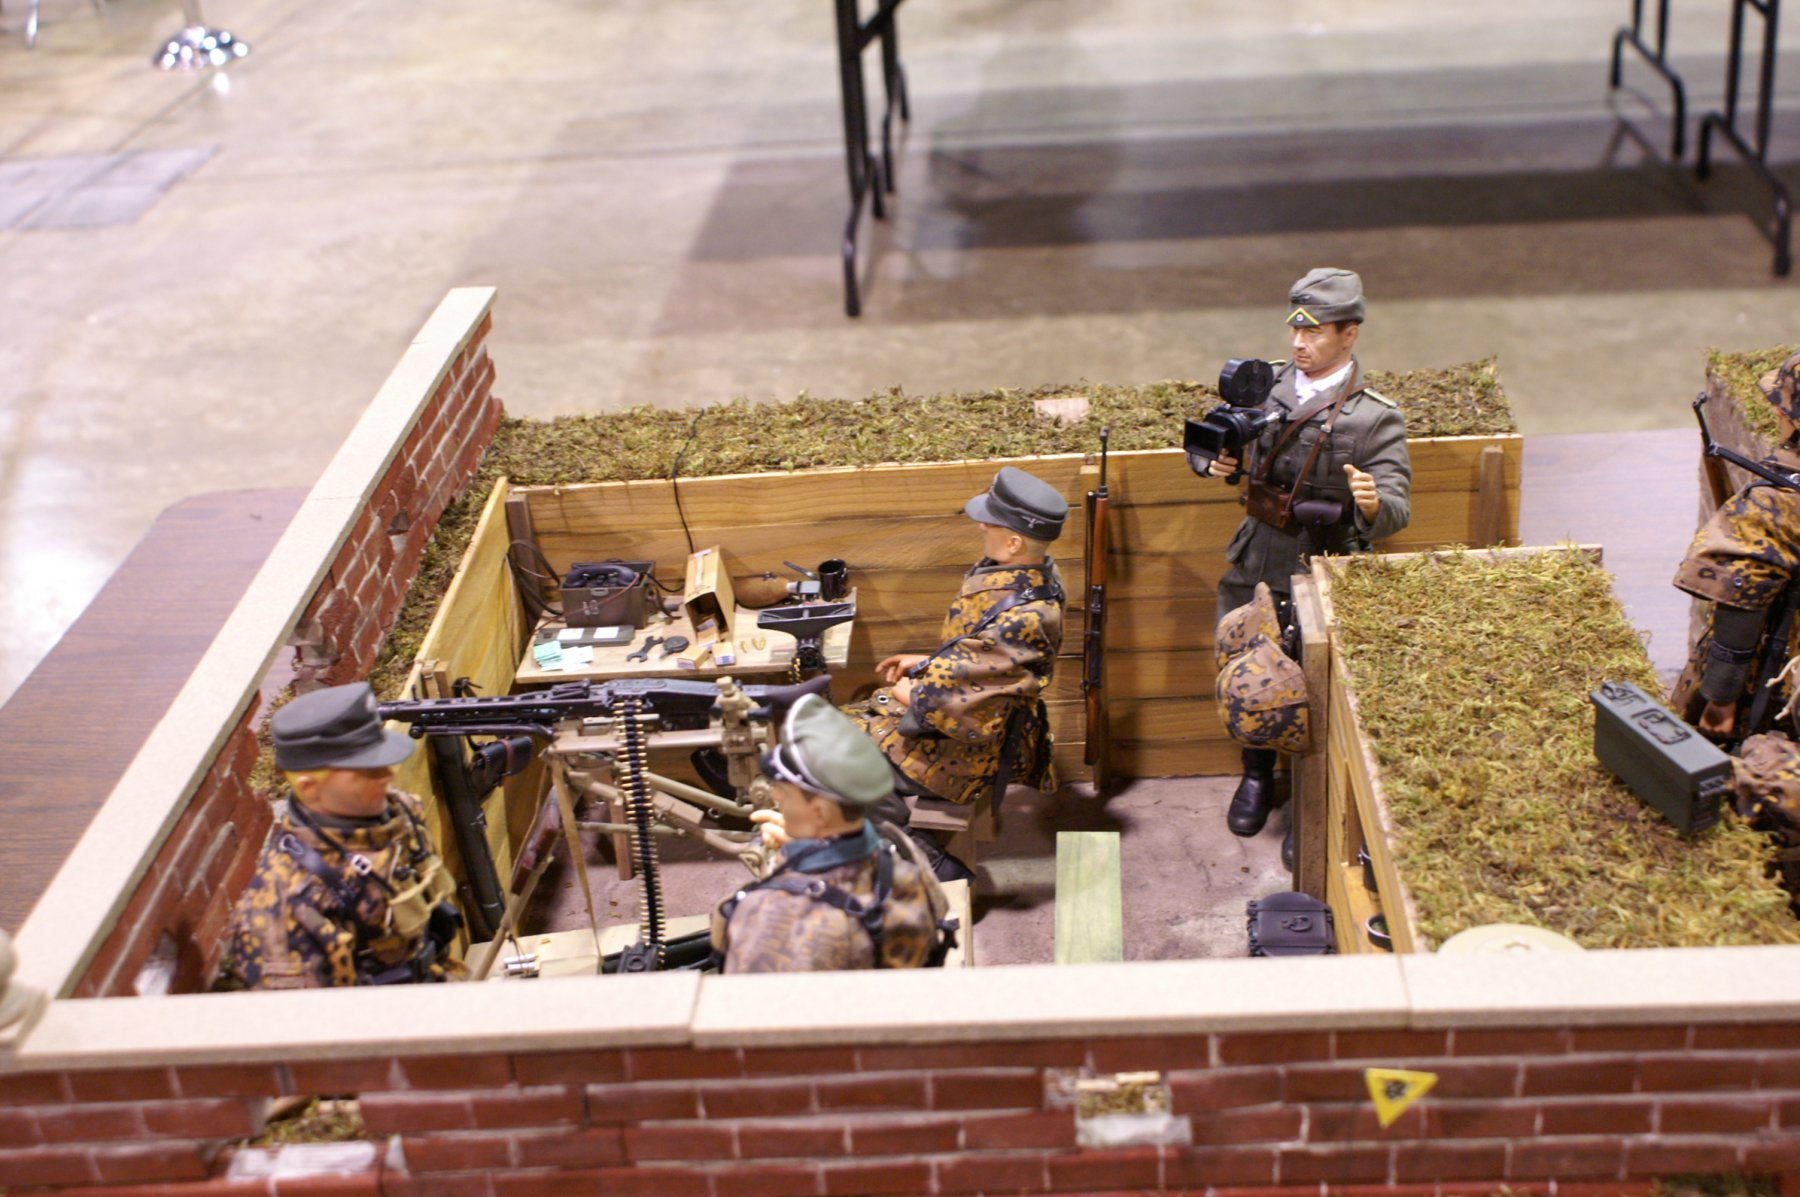 Mg Building Materials On Military